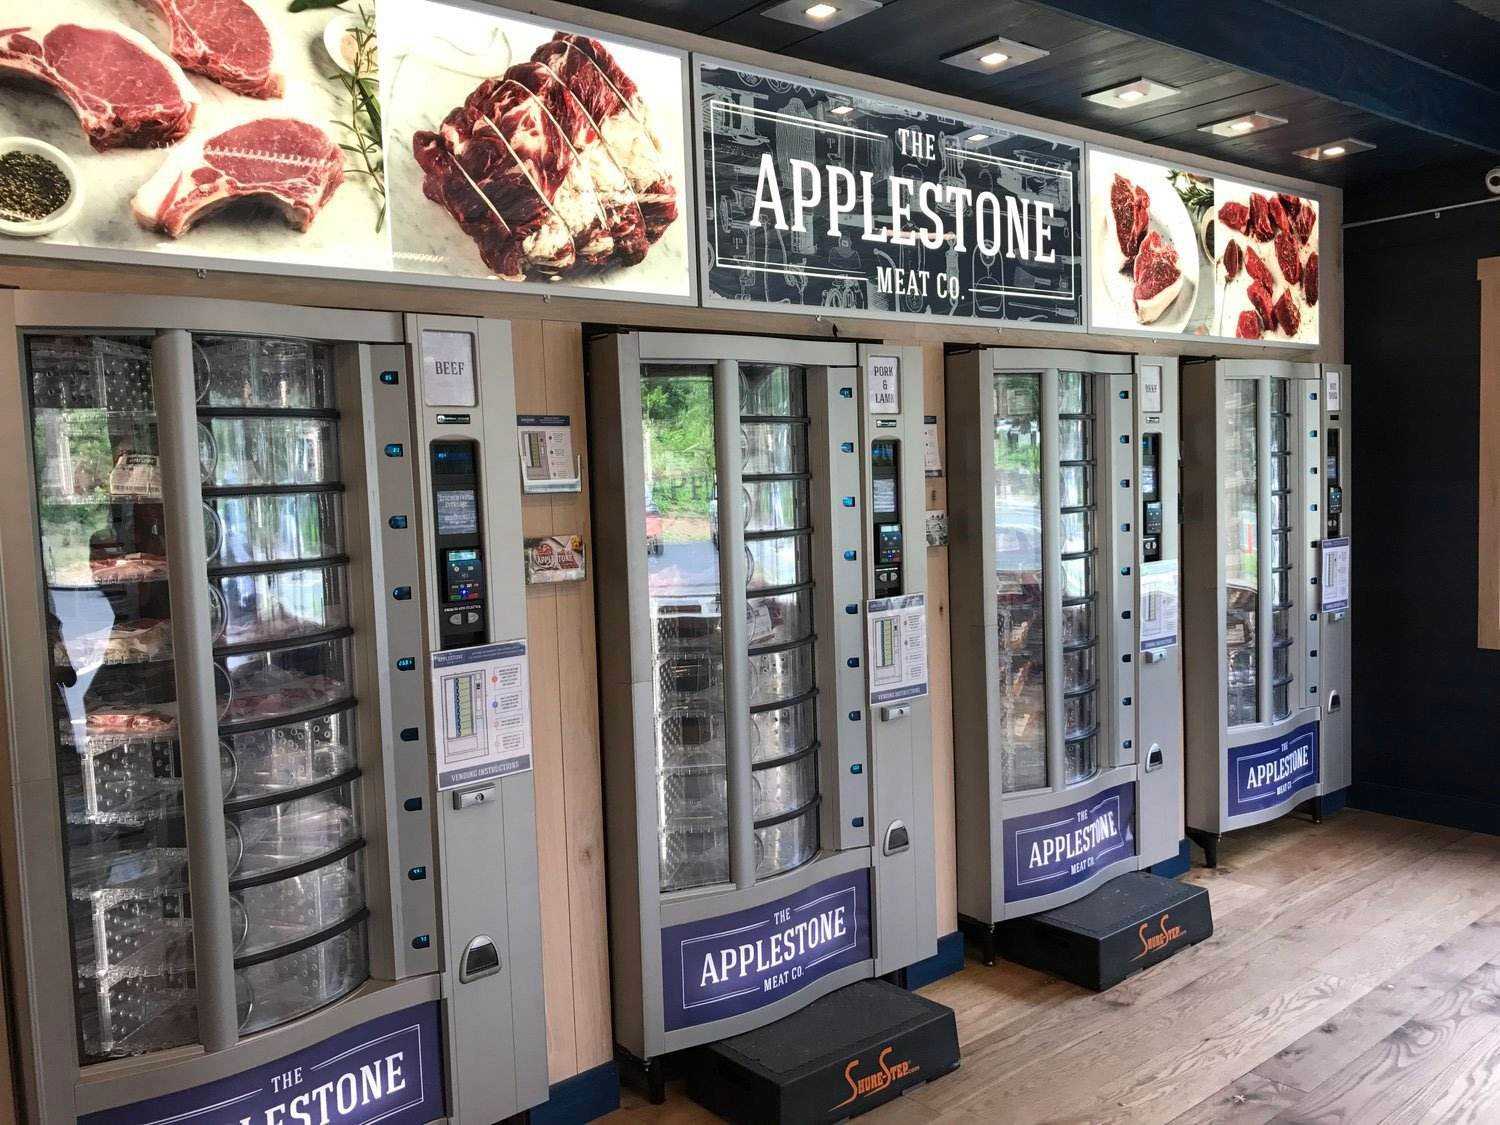 NY takes on Japan's vending machines with 24-hour meat dispenser